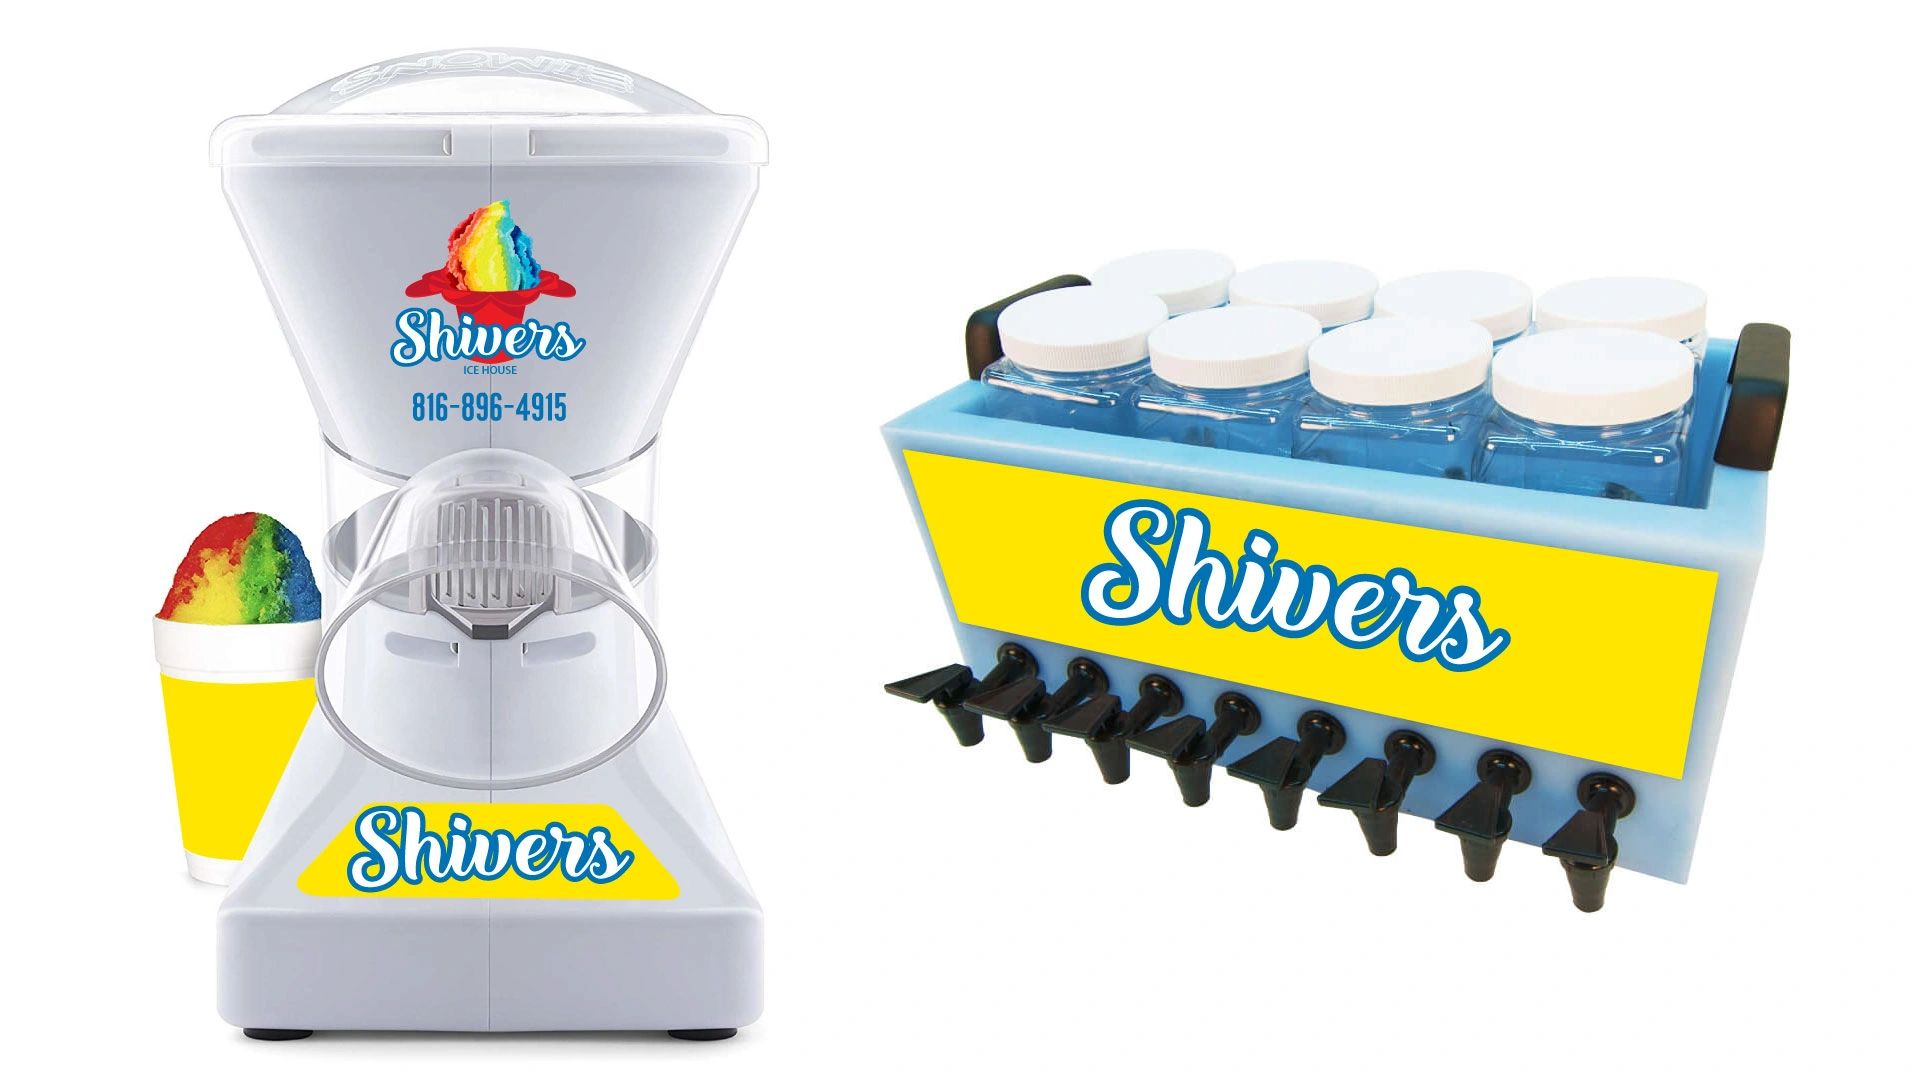 Rent both shaver and flavor station from shivers.